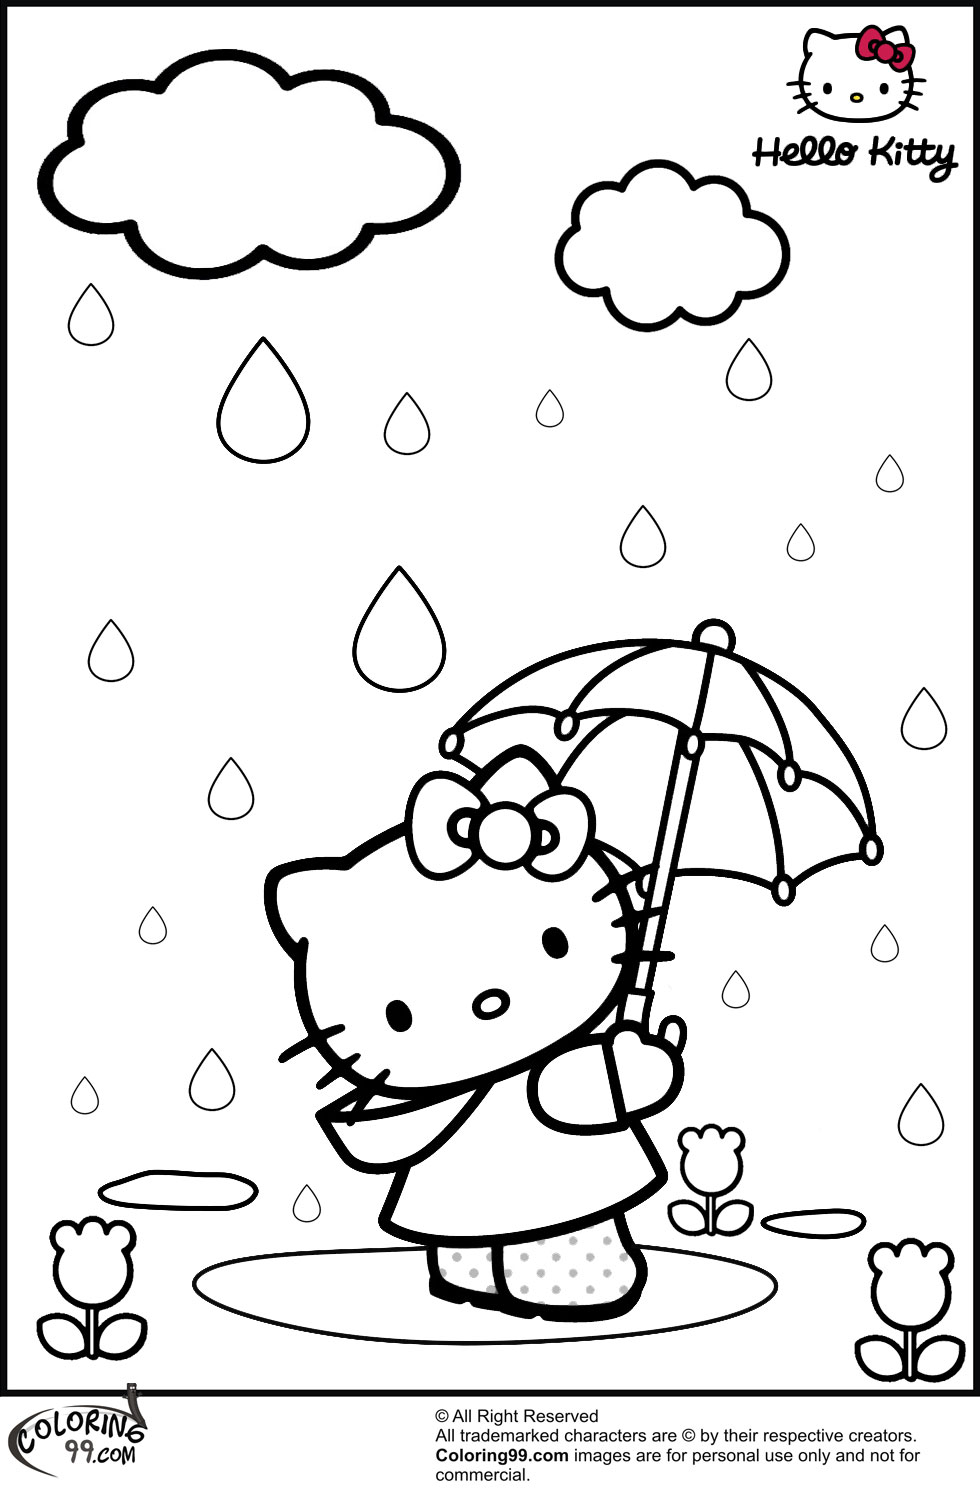 Hello Kitty Coloring Pages Team